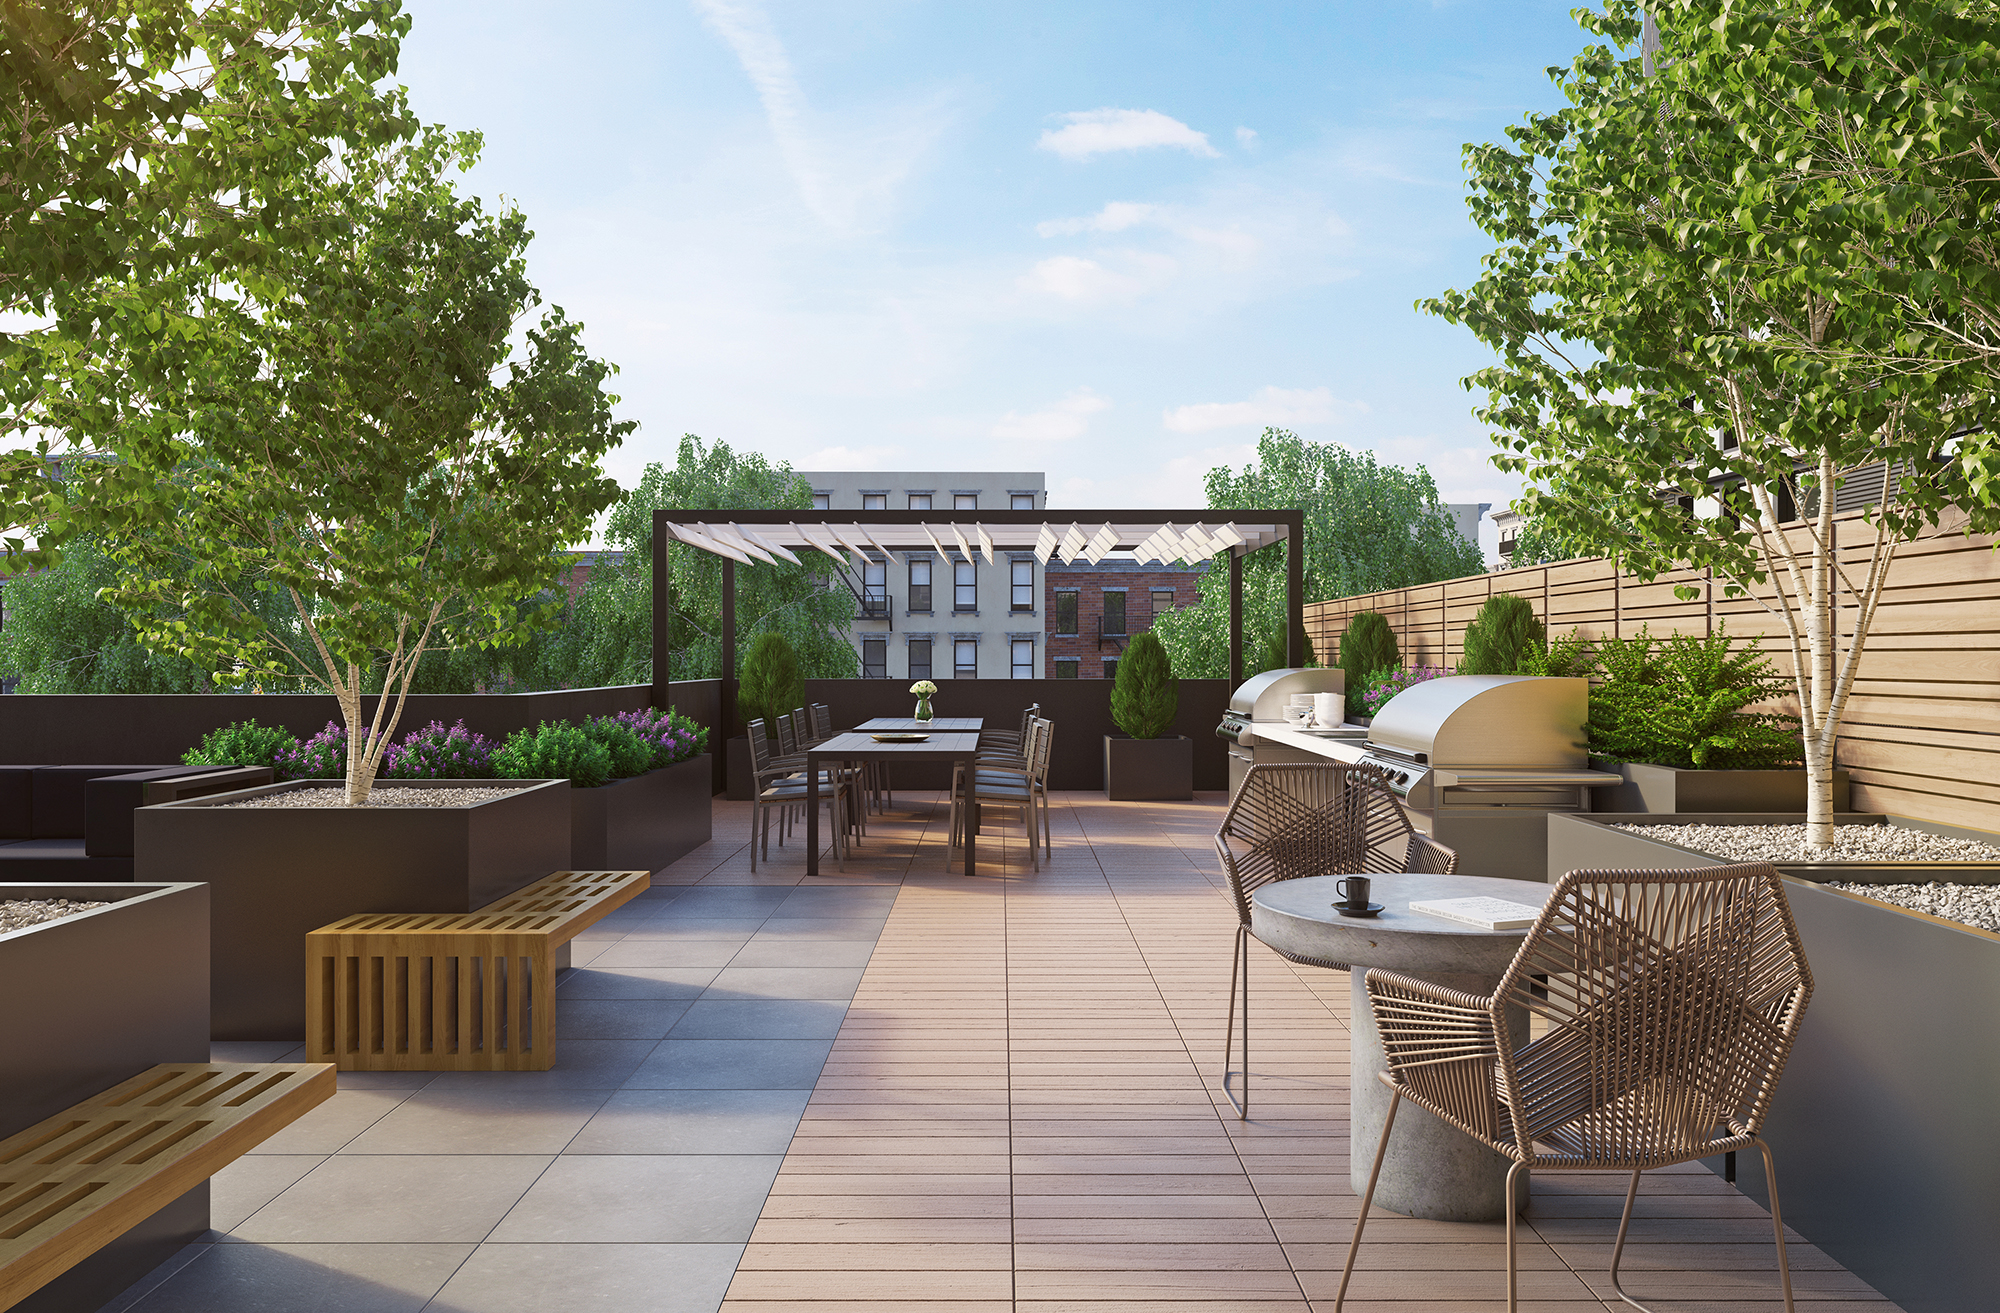 Rendering of garden terrace at Waverly Brooklyn, 500 Waverly Avenue. Credit: Millarc